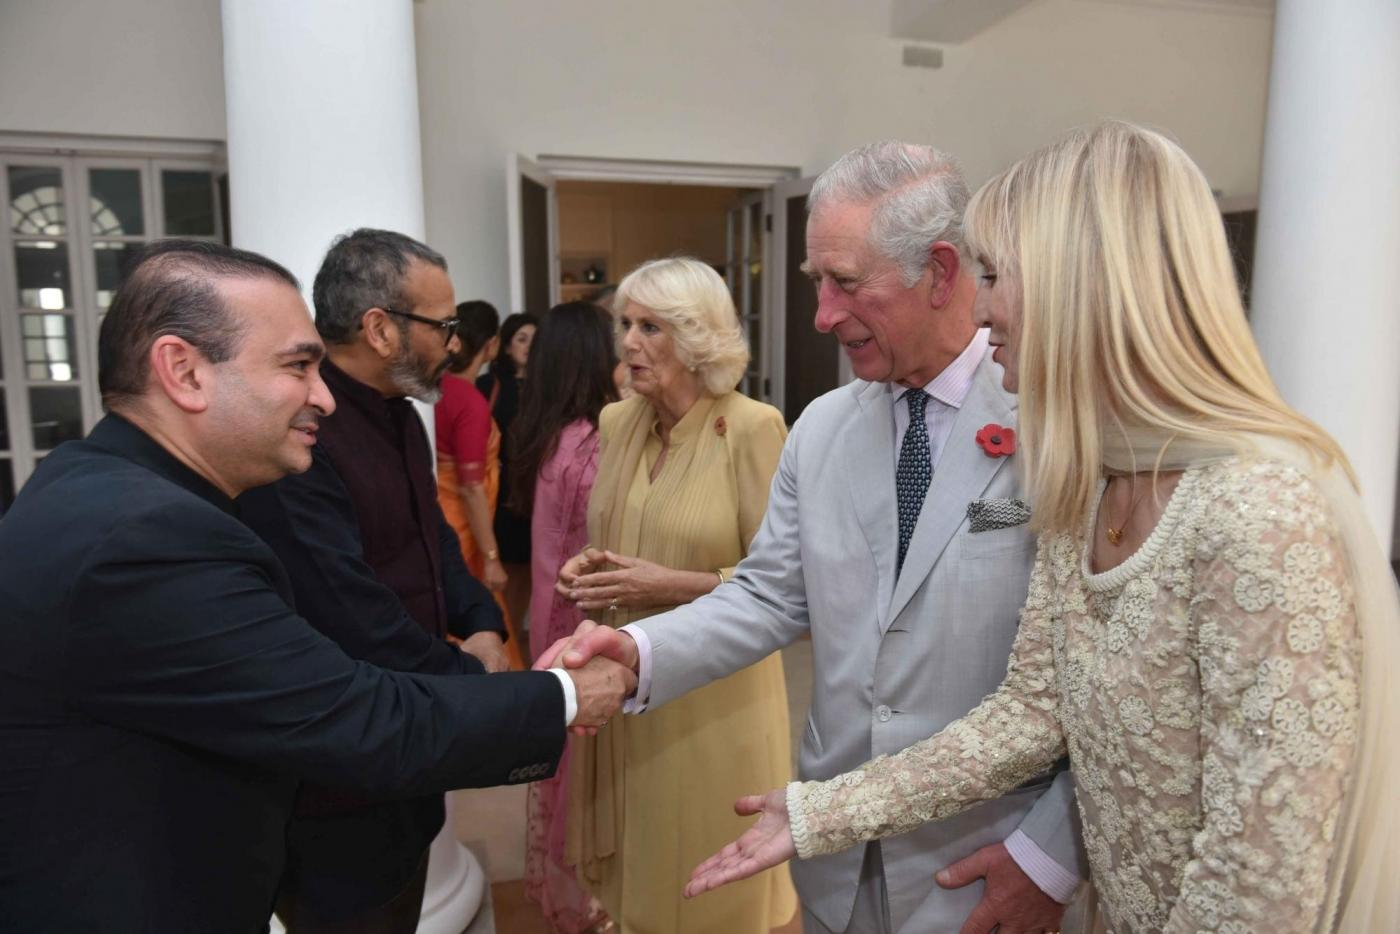 Billionaire diamond trader Nirav Modi (R) shakes hands with TRH Charles, Prince of Wales and Camilla, Duchess of Cornwall. (File Photo: IANS) by .